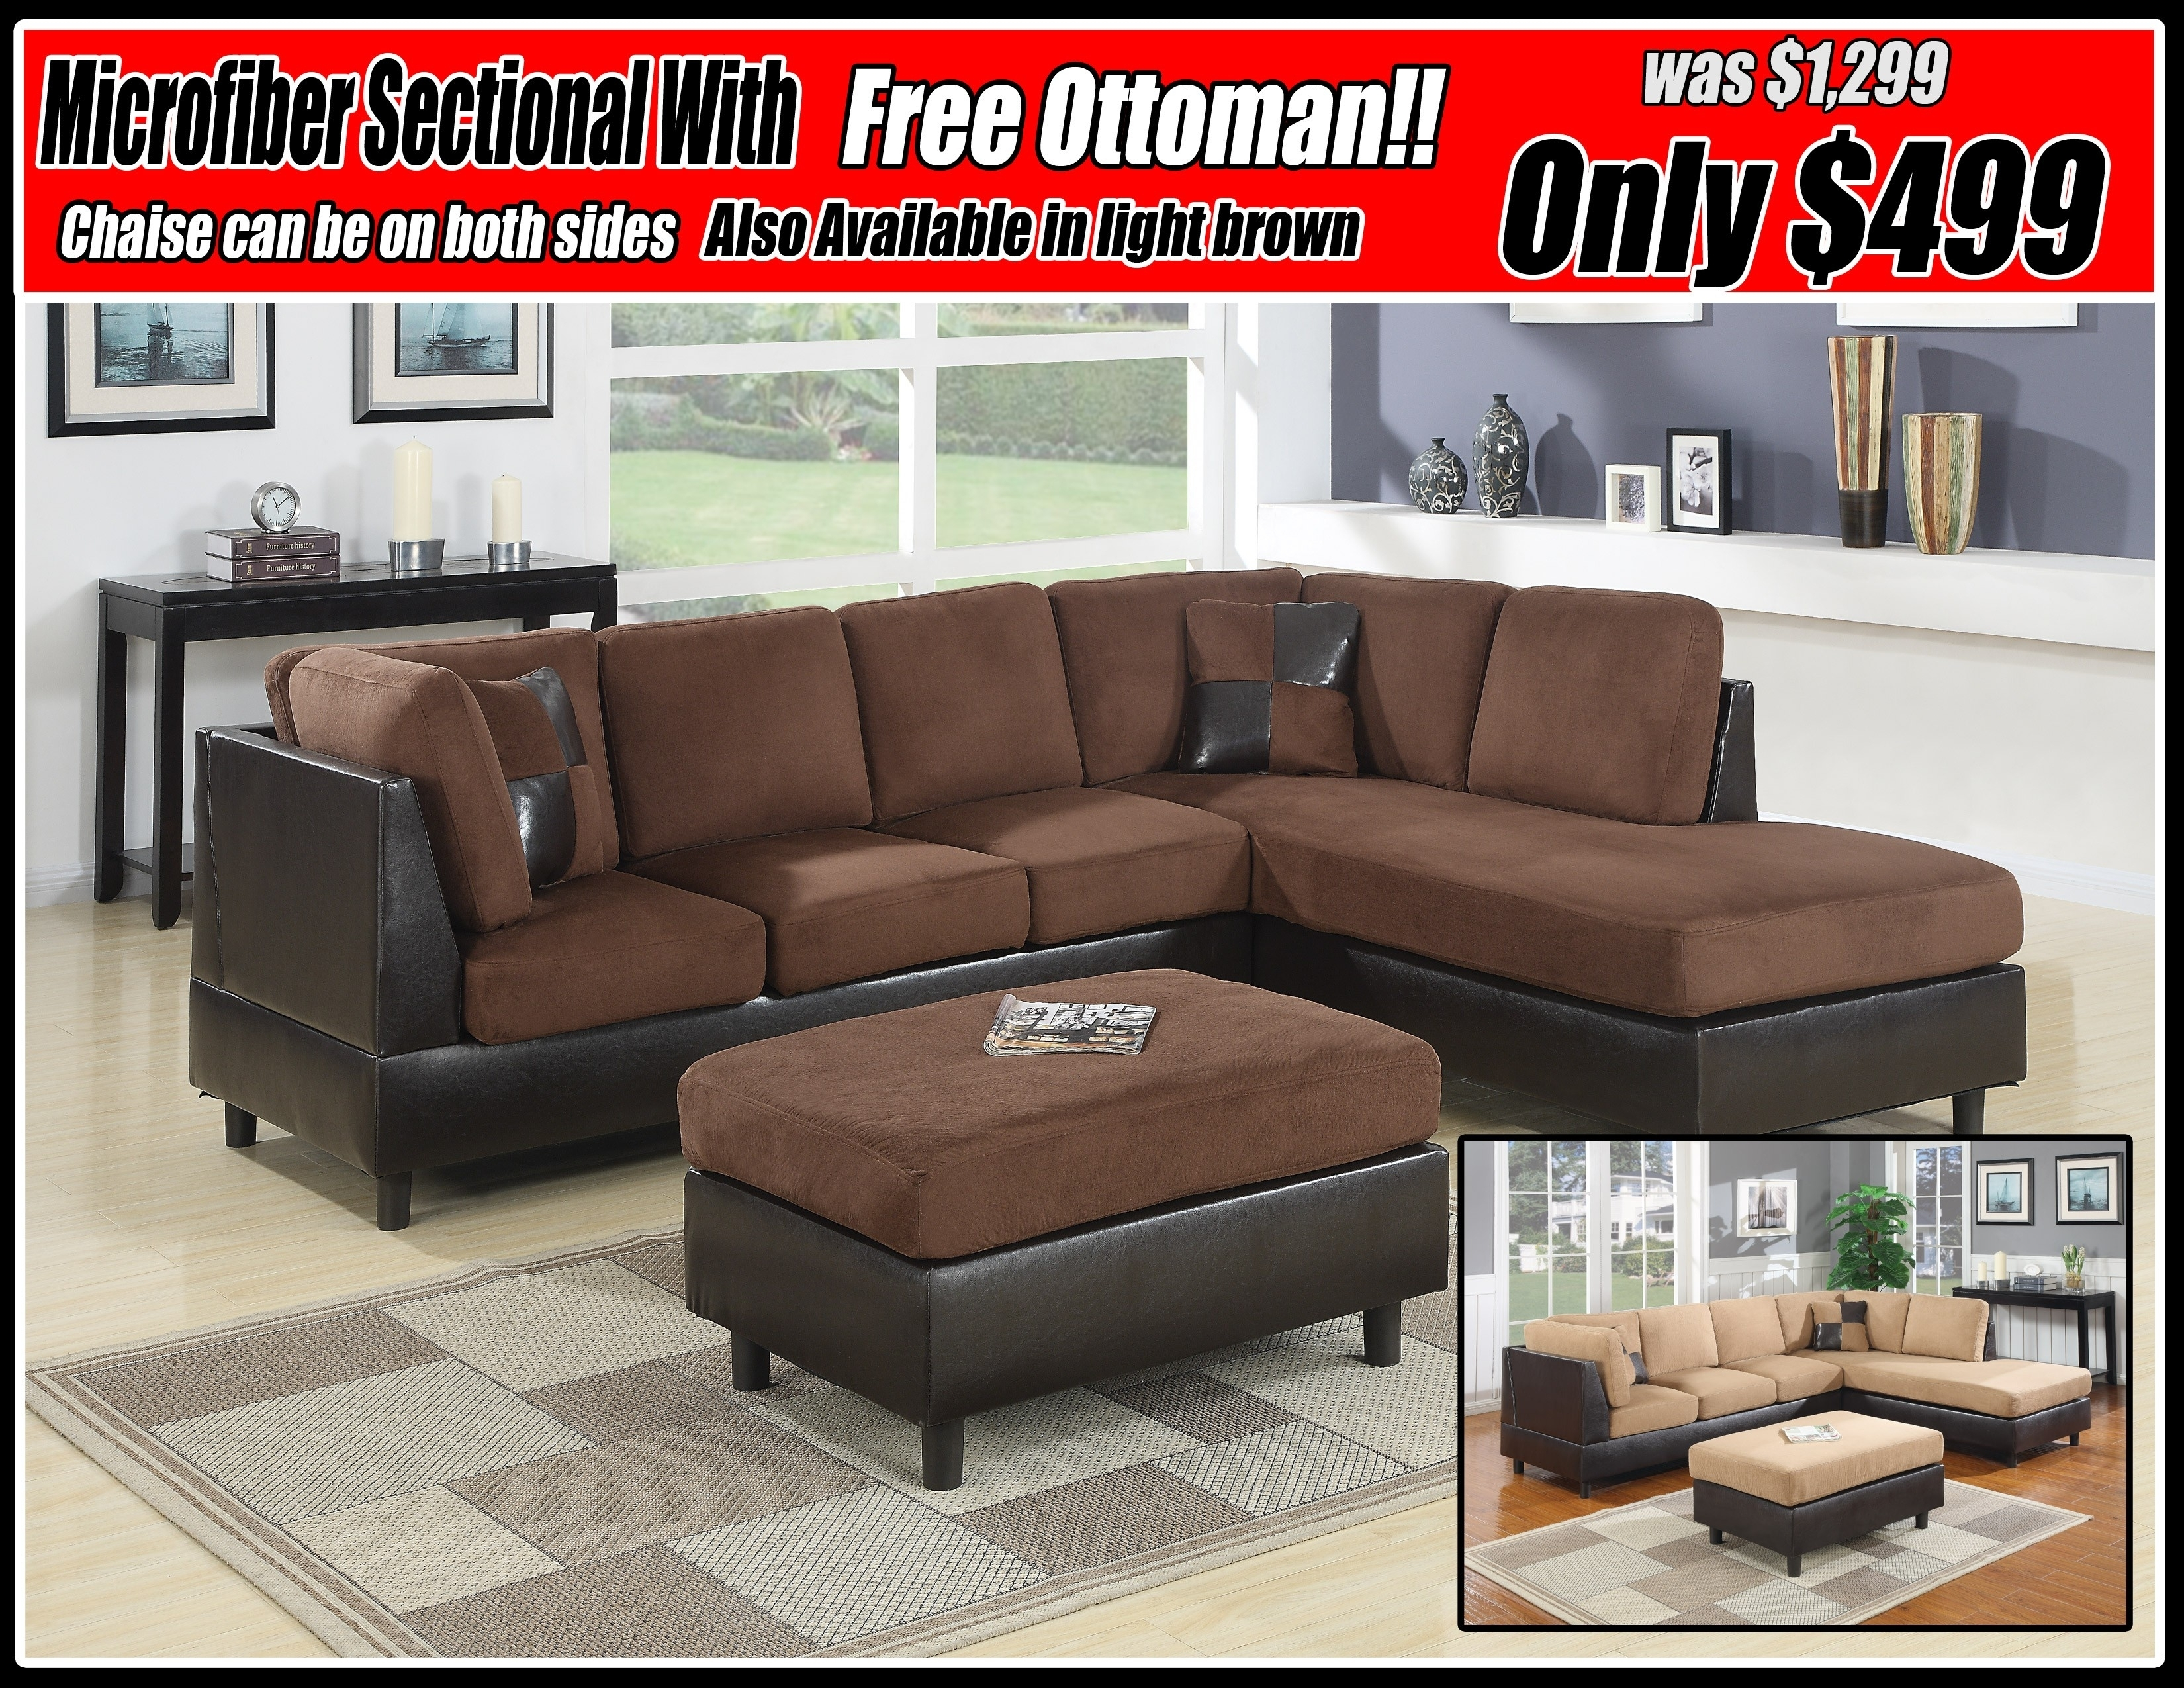 Featured Image of Visalia Ca Sectional Sofas